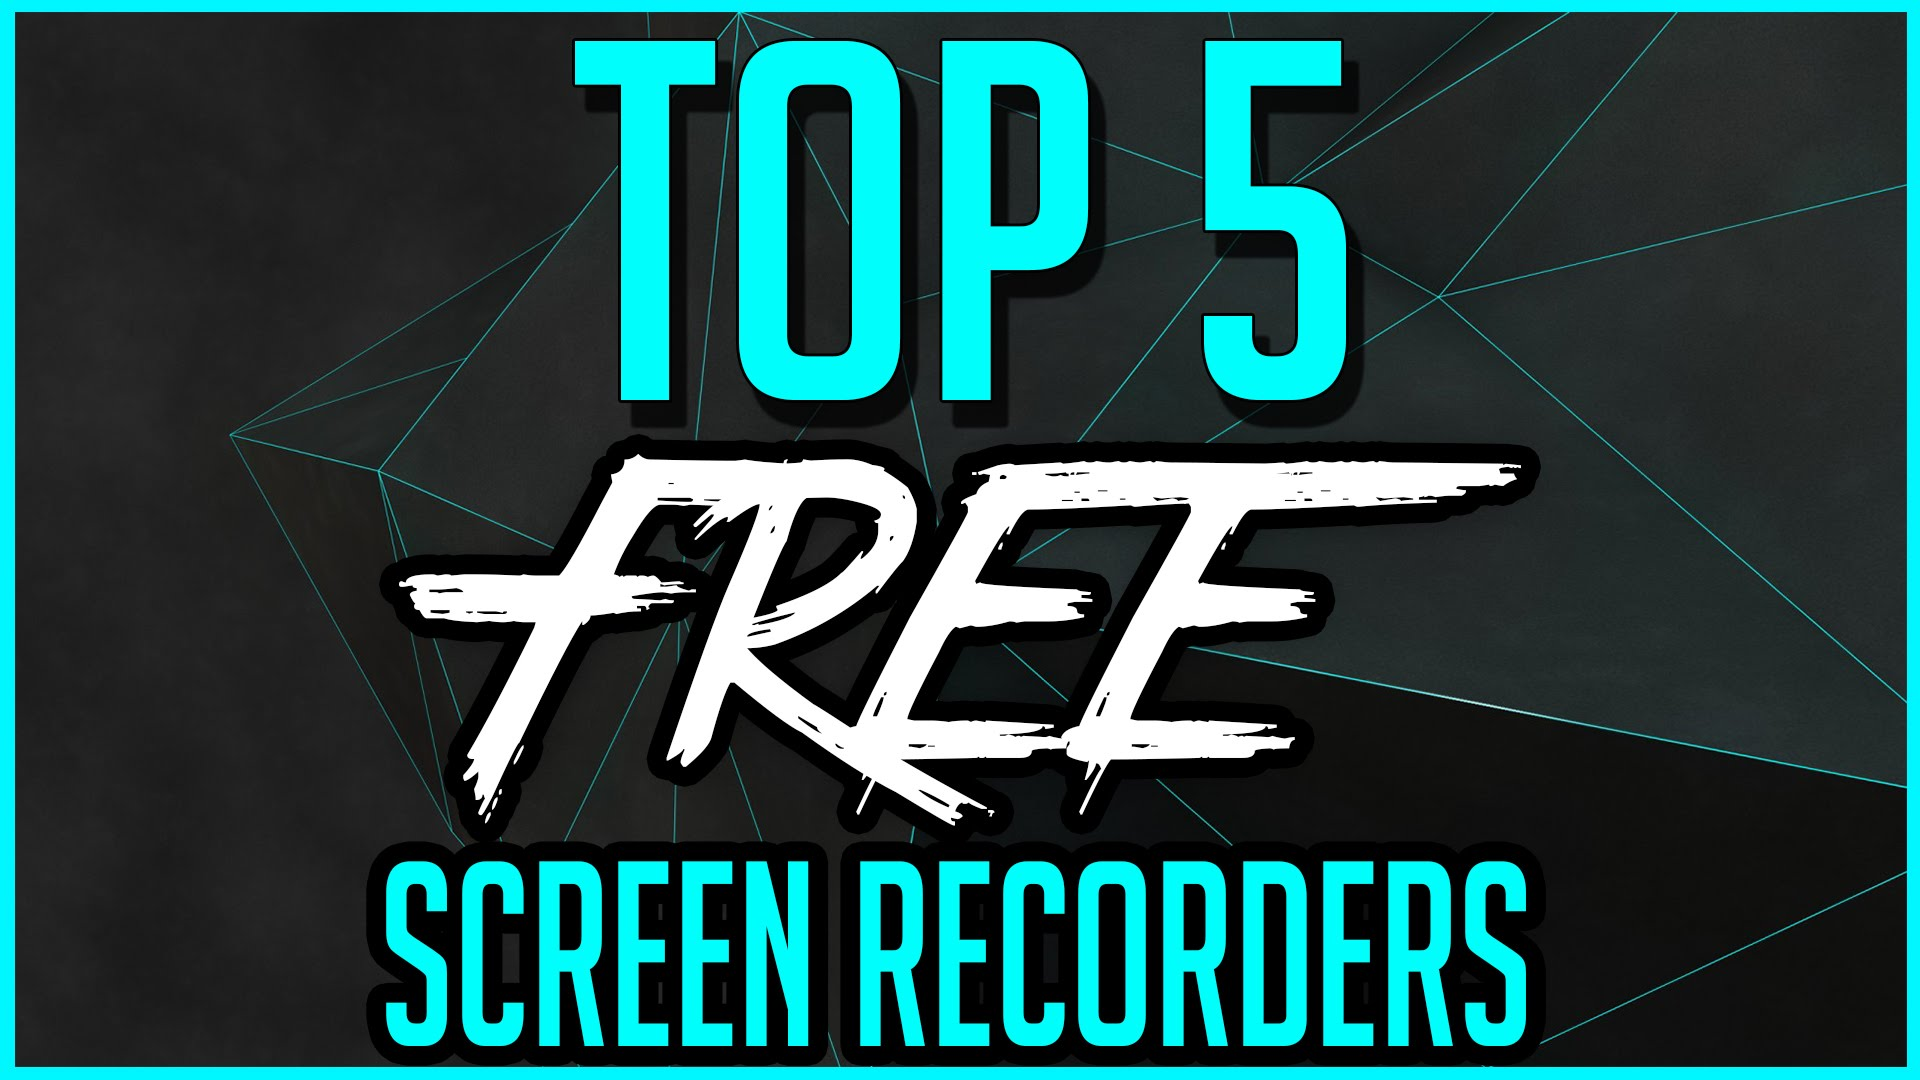 5+ Best Screen Capture, Recording Software Apps for PC & Phones